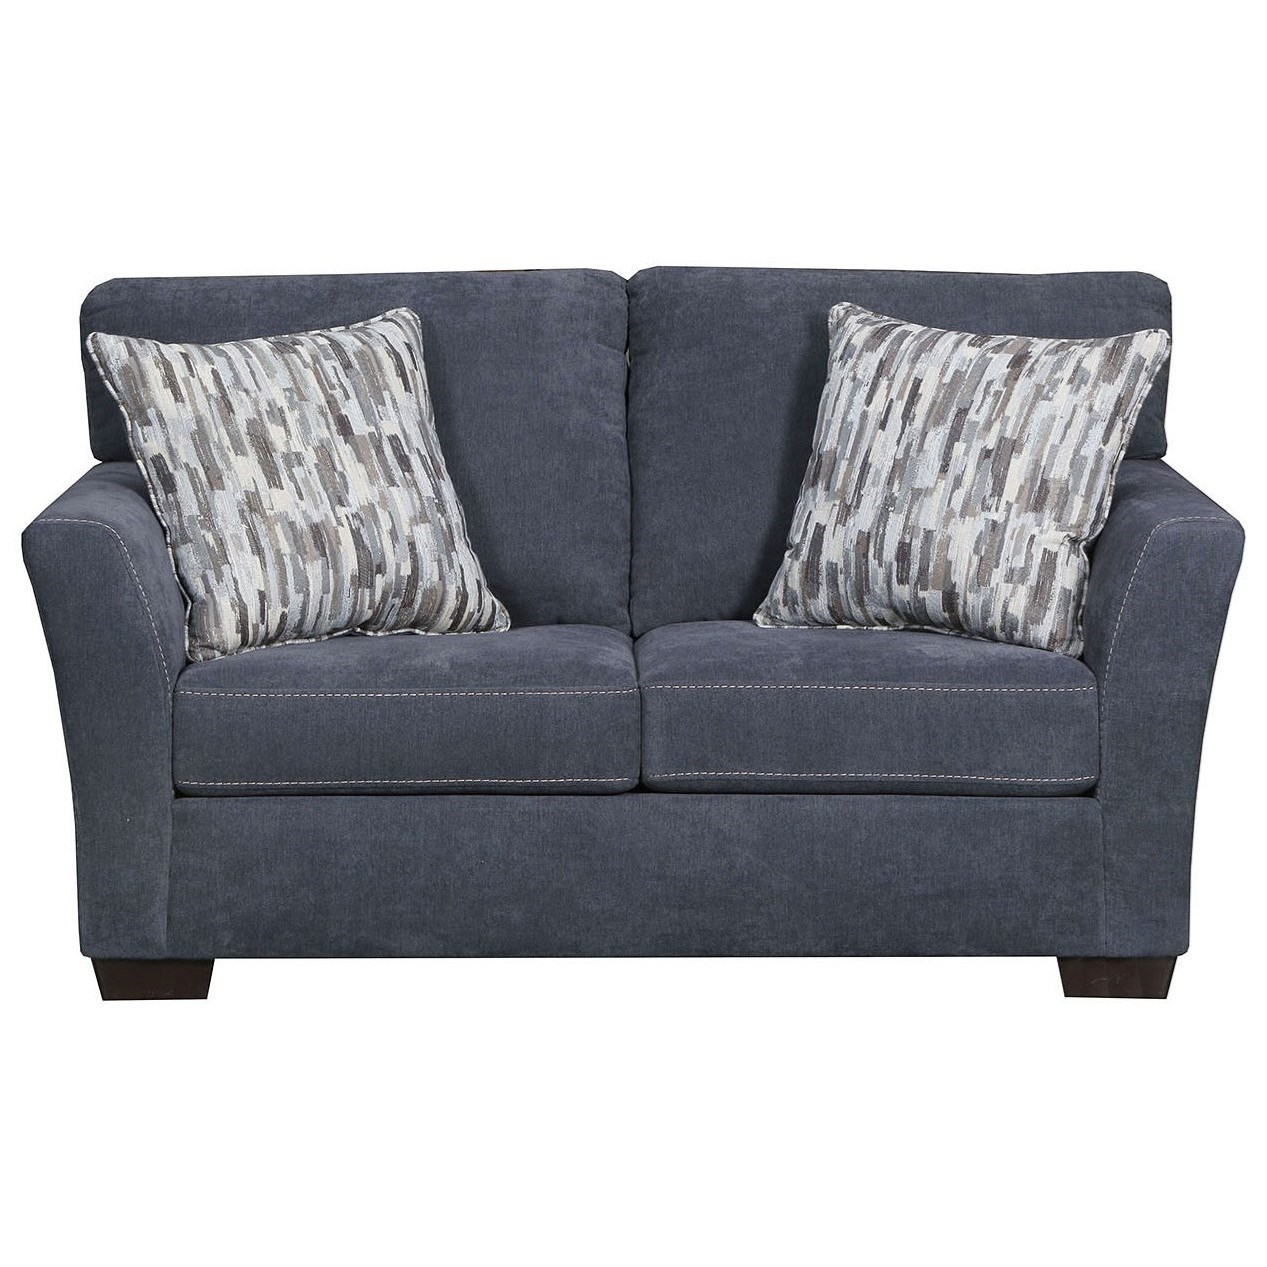 7058 Loveseat by Lane at Powell's Furniture and Mattress